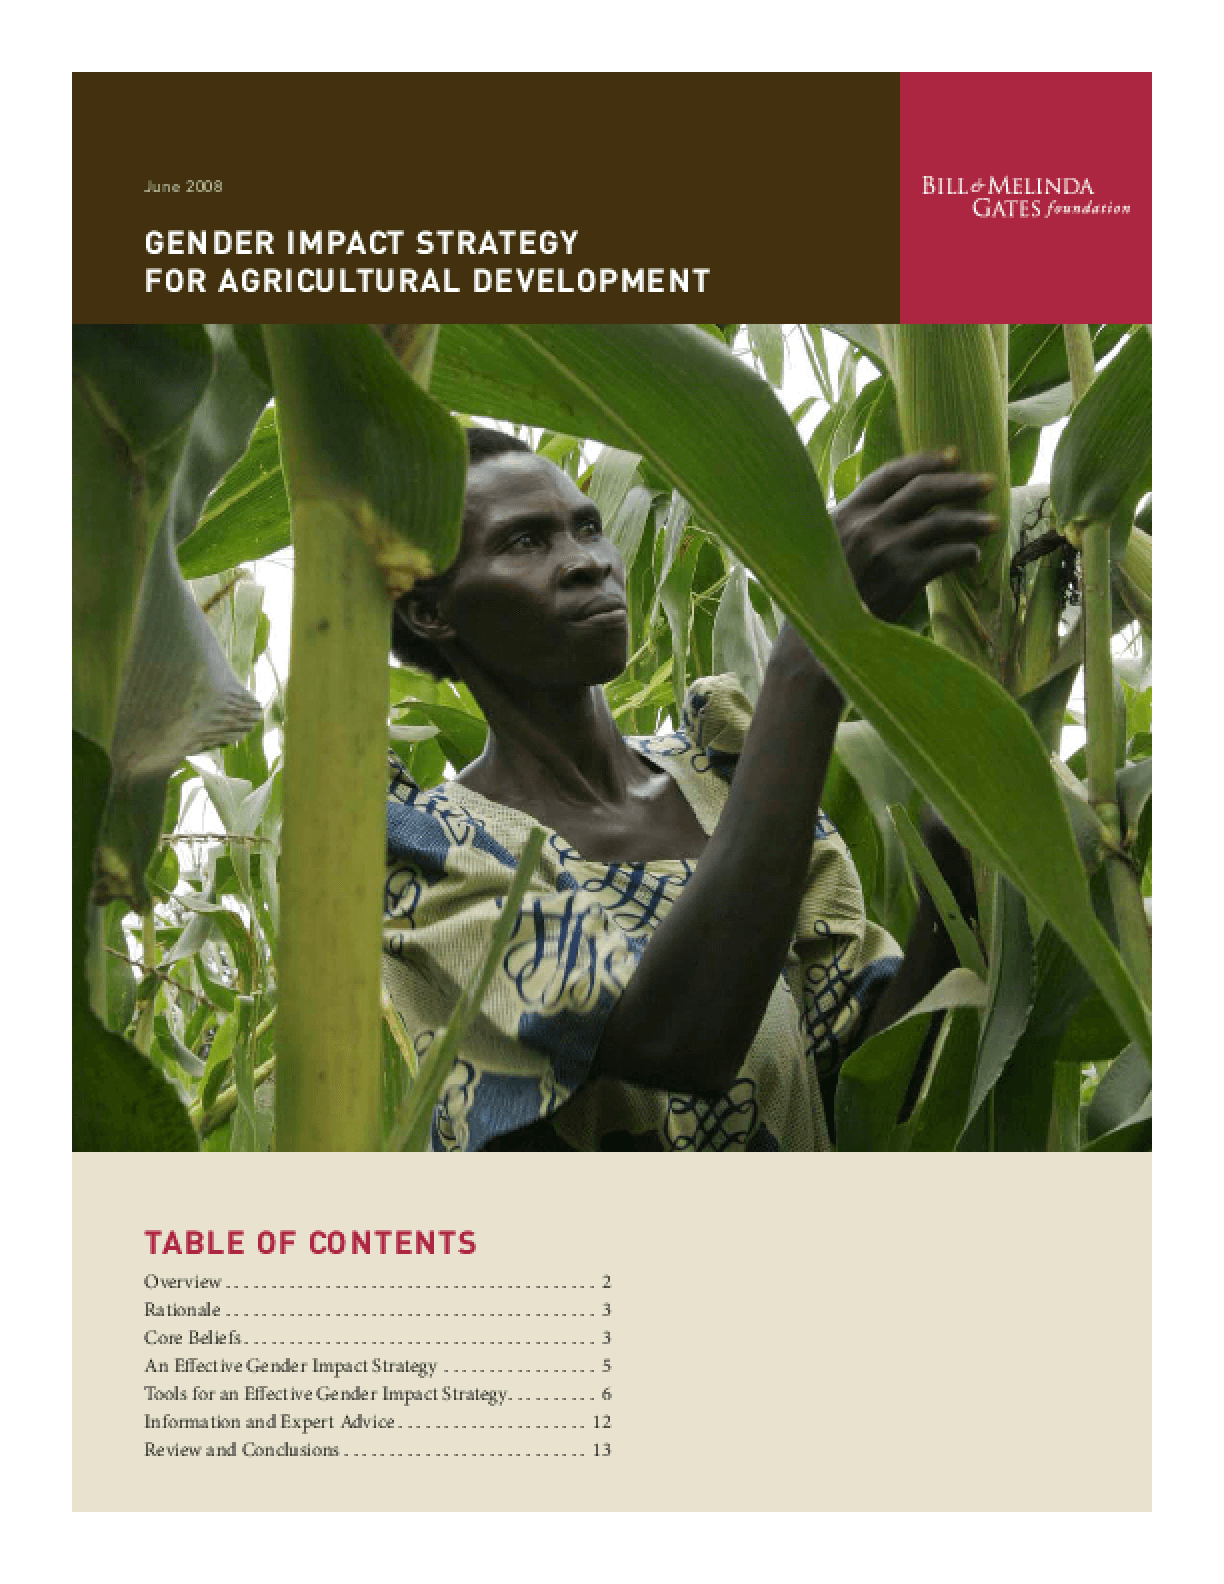 Gender Impact Strategy for Agricultural Development